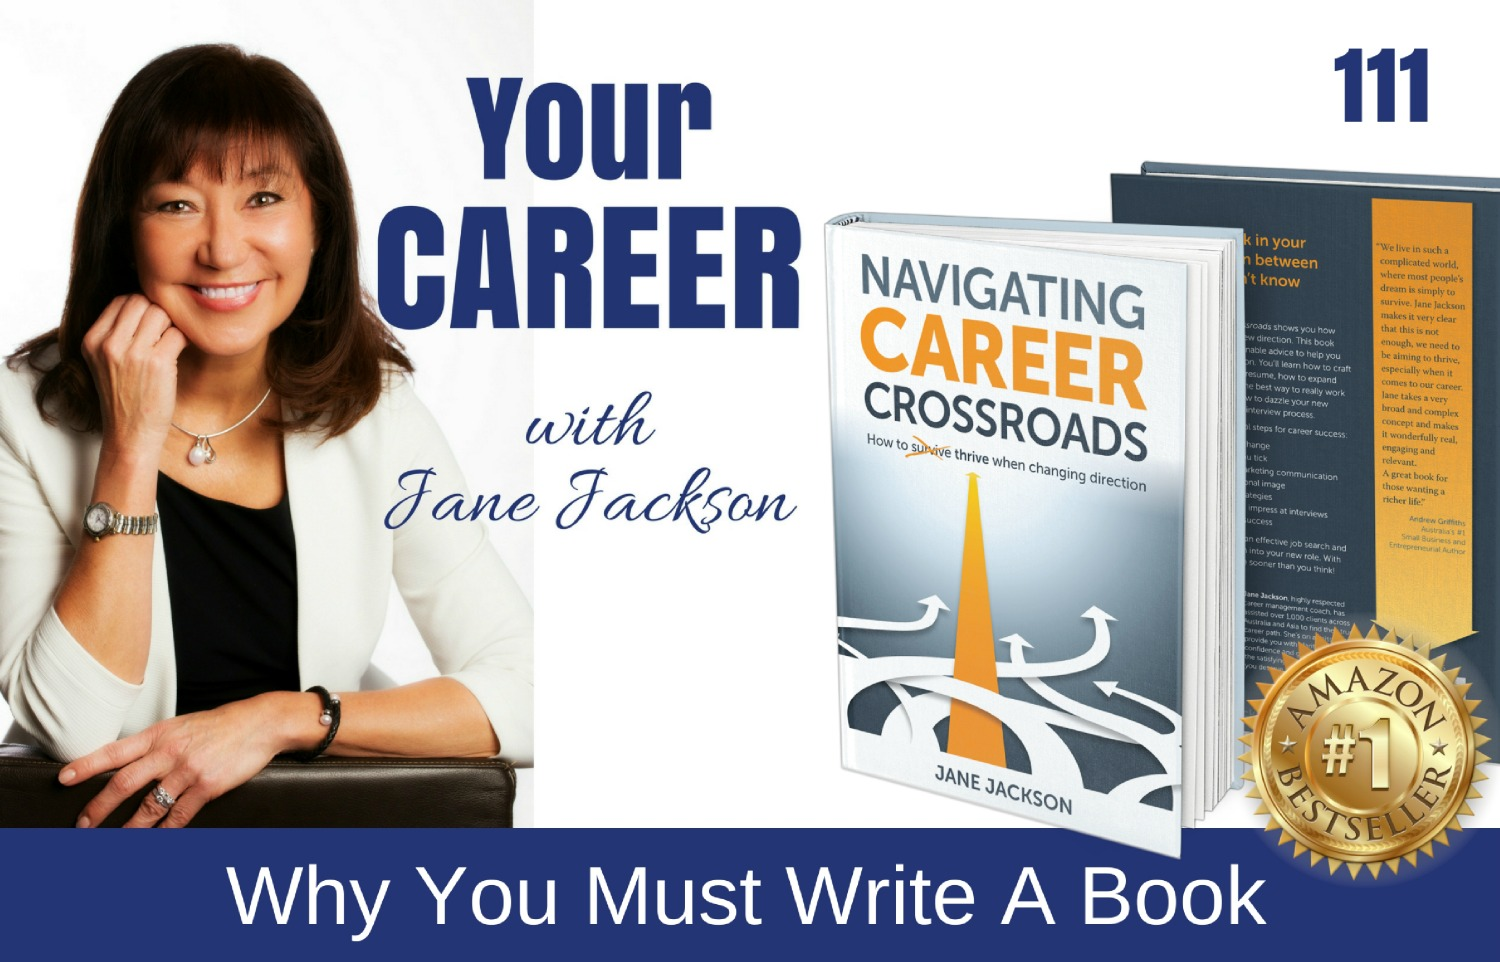 Why you must write a book, how to write a book, author, writer, blog, publish, publisher, write a book, book